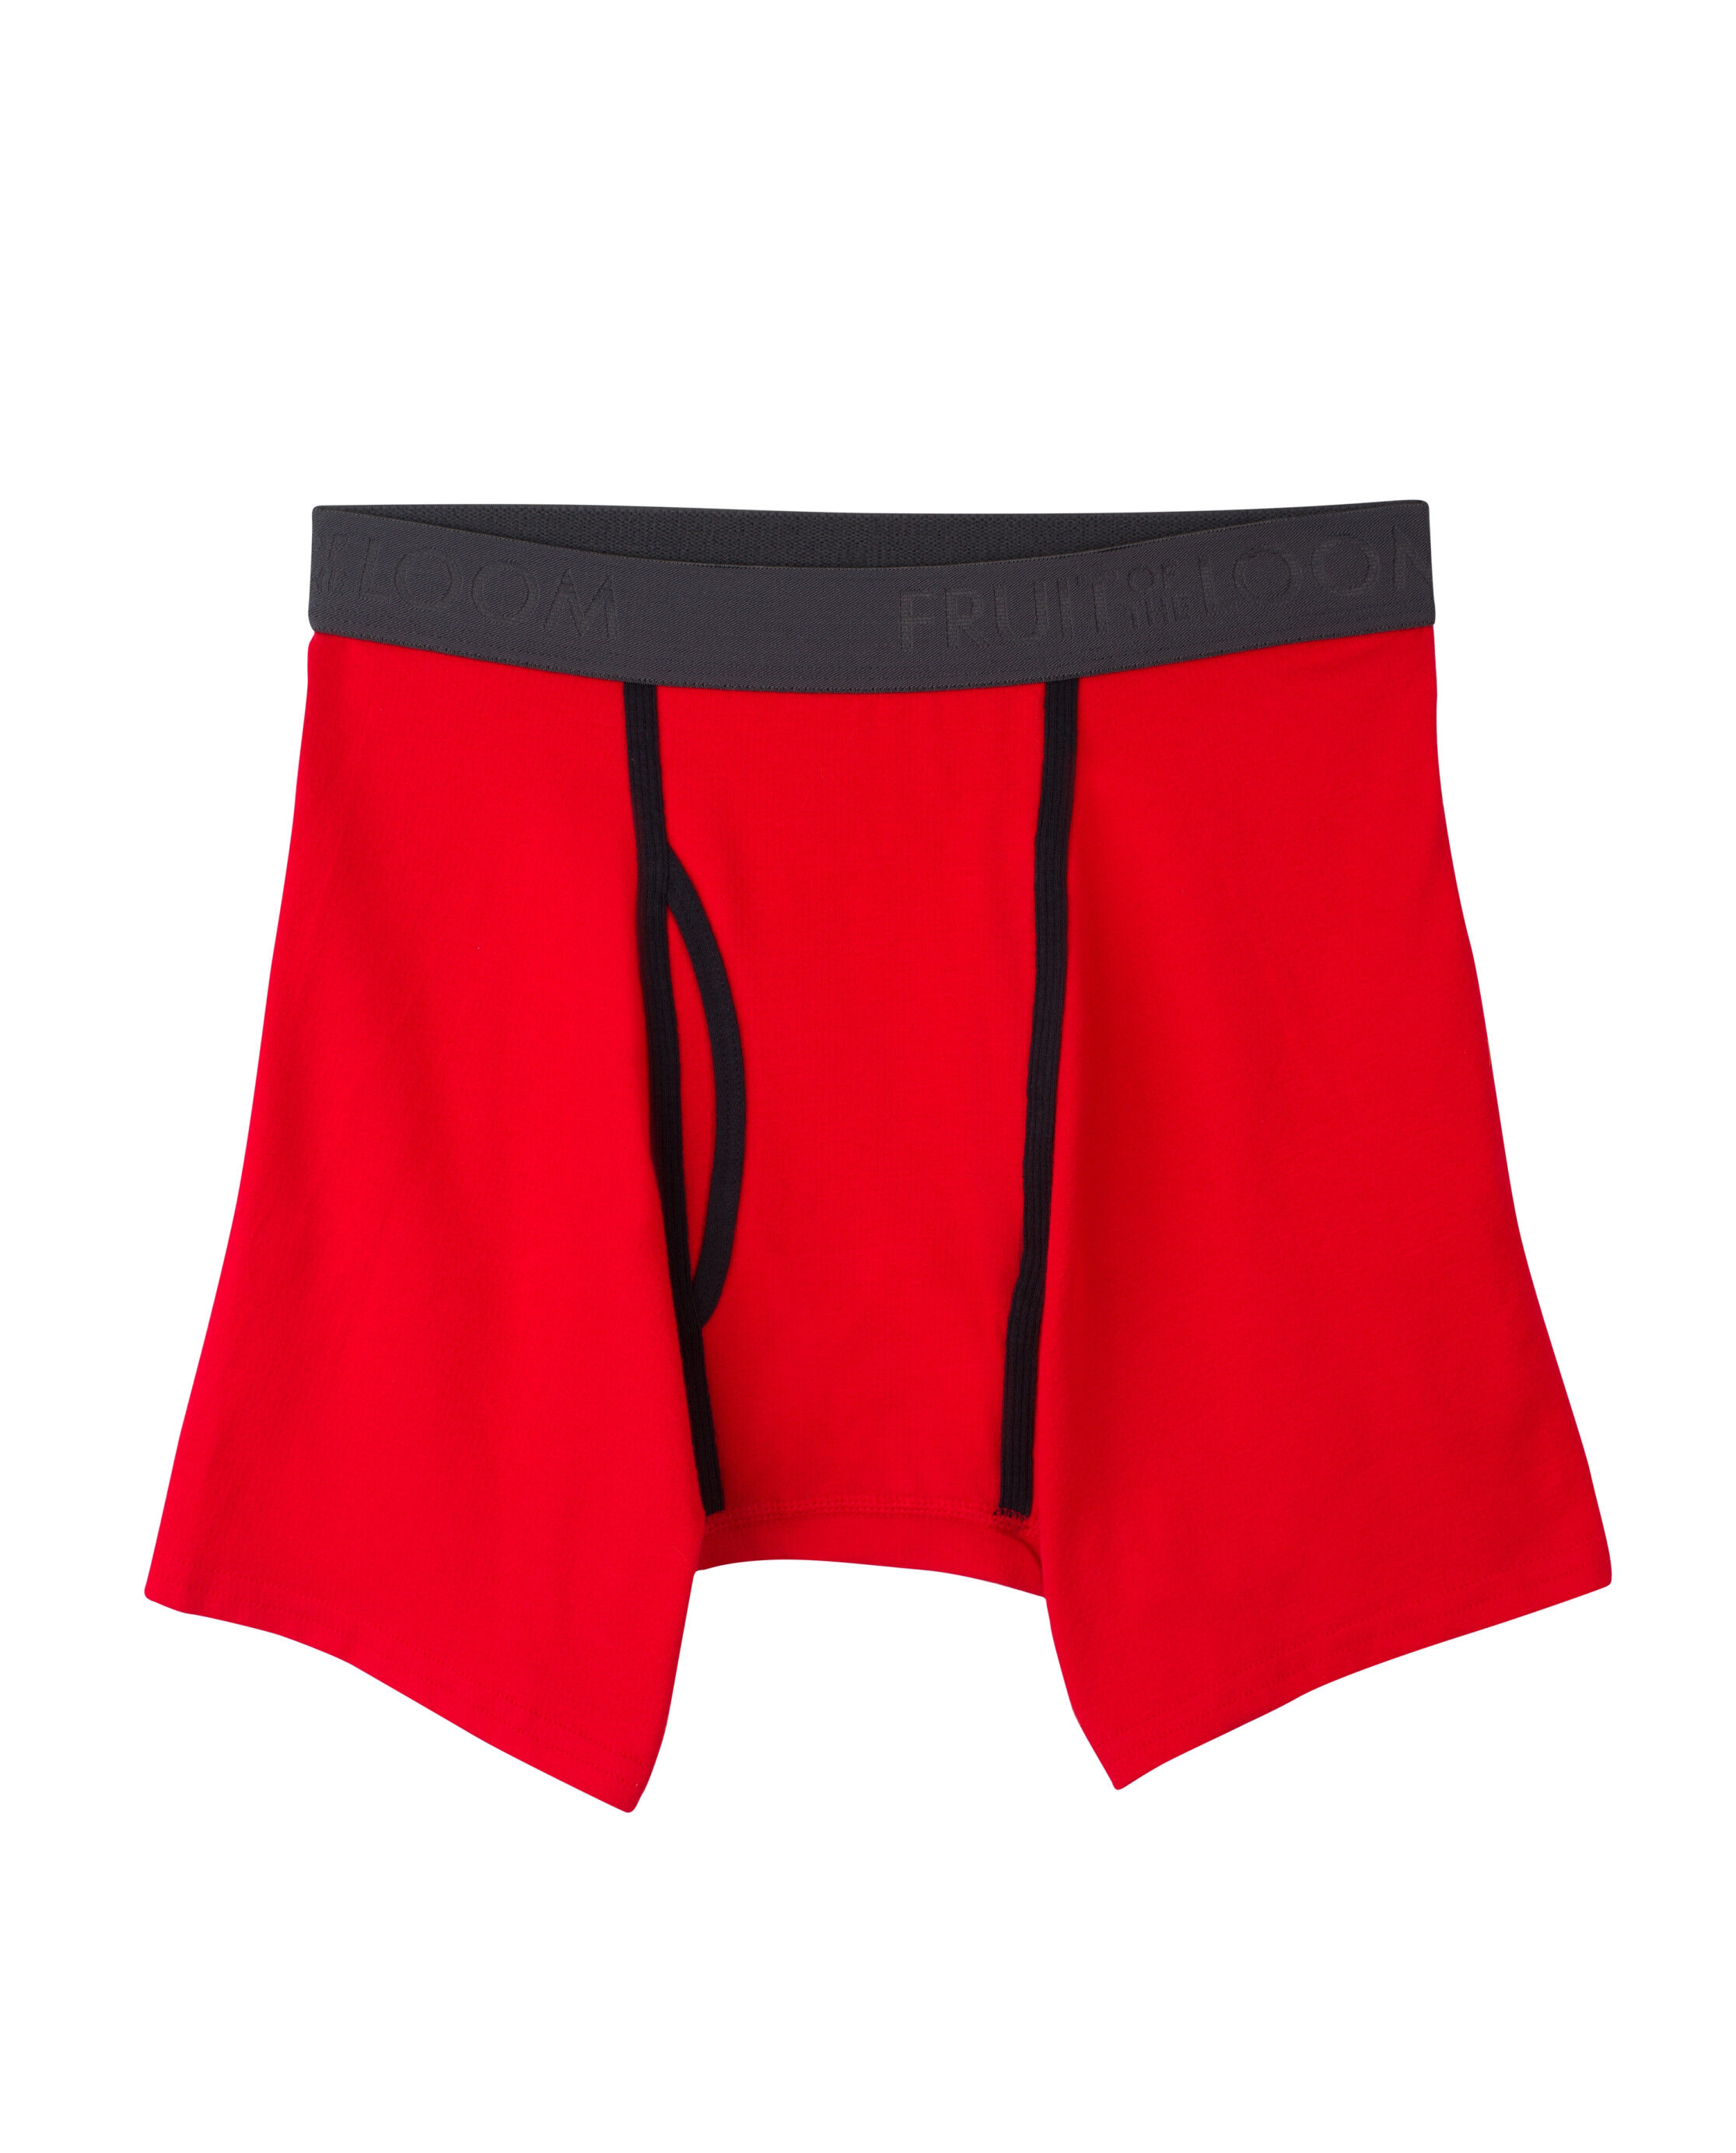 Men Russell Short Leg Red//Performance Boxer Brief Underwear Guy/'s Feel Great!